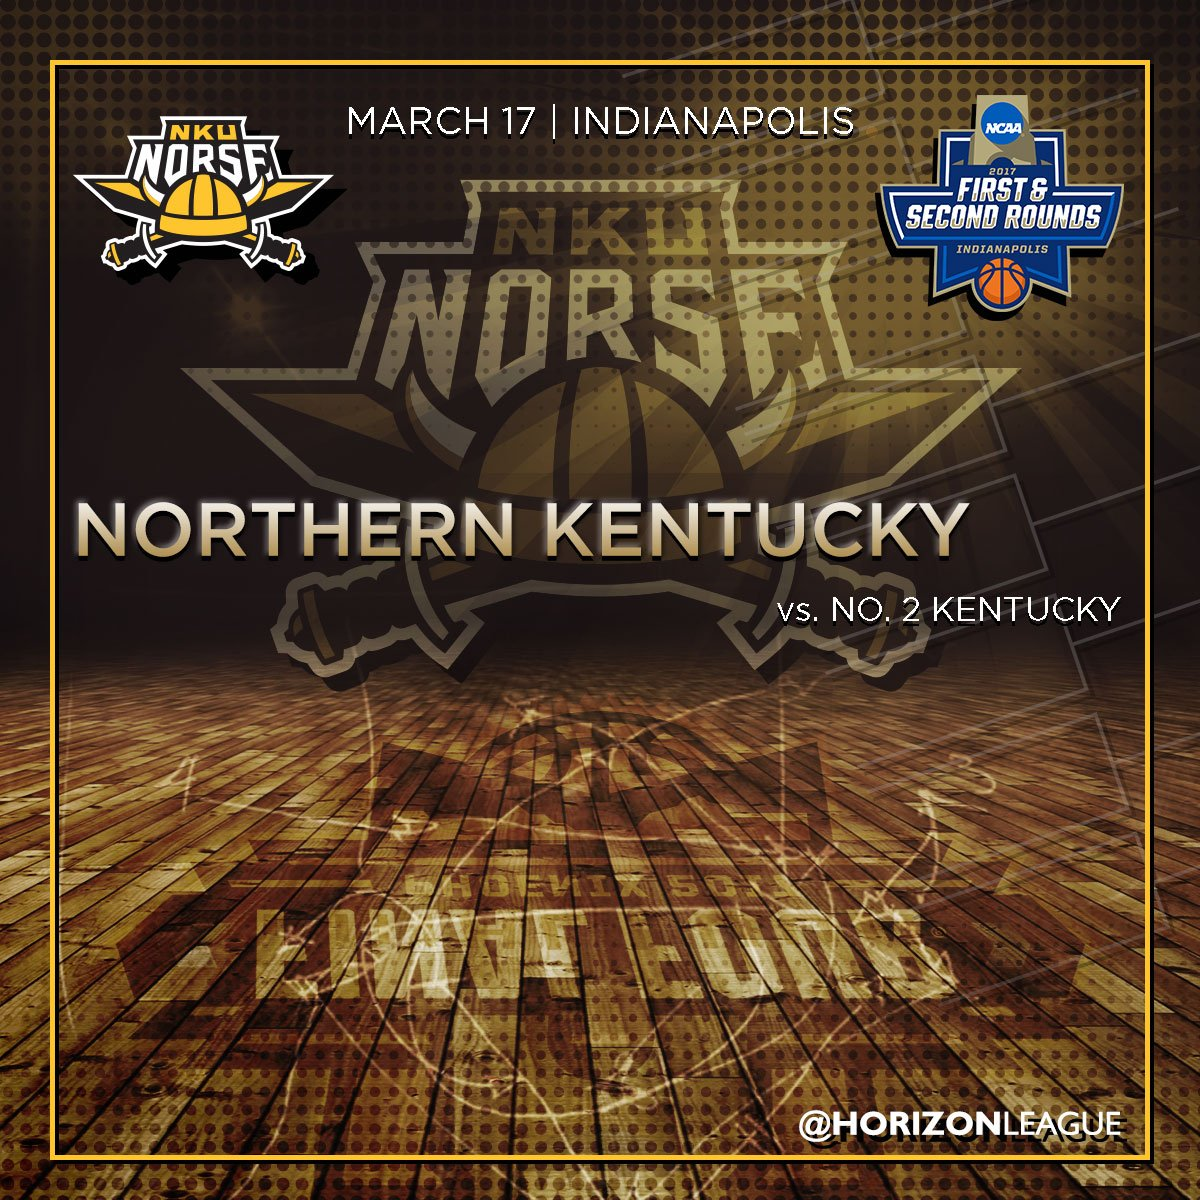 .@NKUNorseMBB will face Kentucky in the 1st rd of the NCAA Tournament in Indianapolis! https://t.co/1CSMwnzsuD